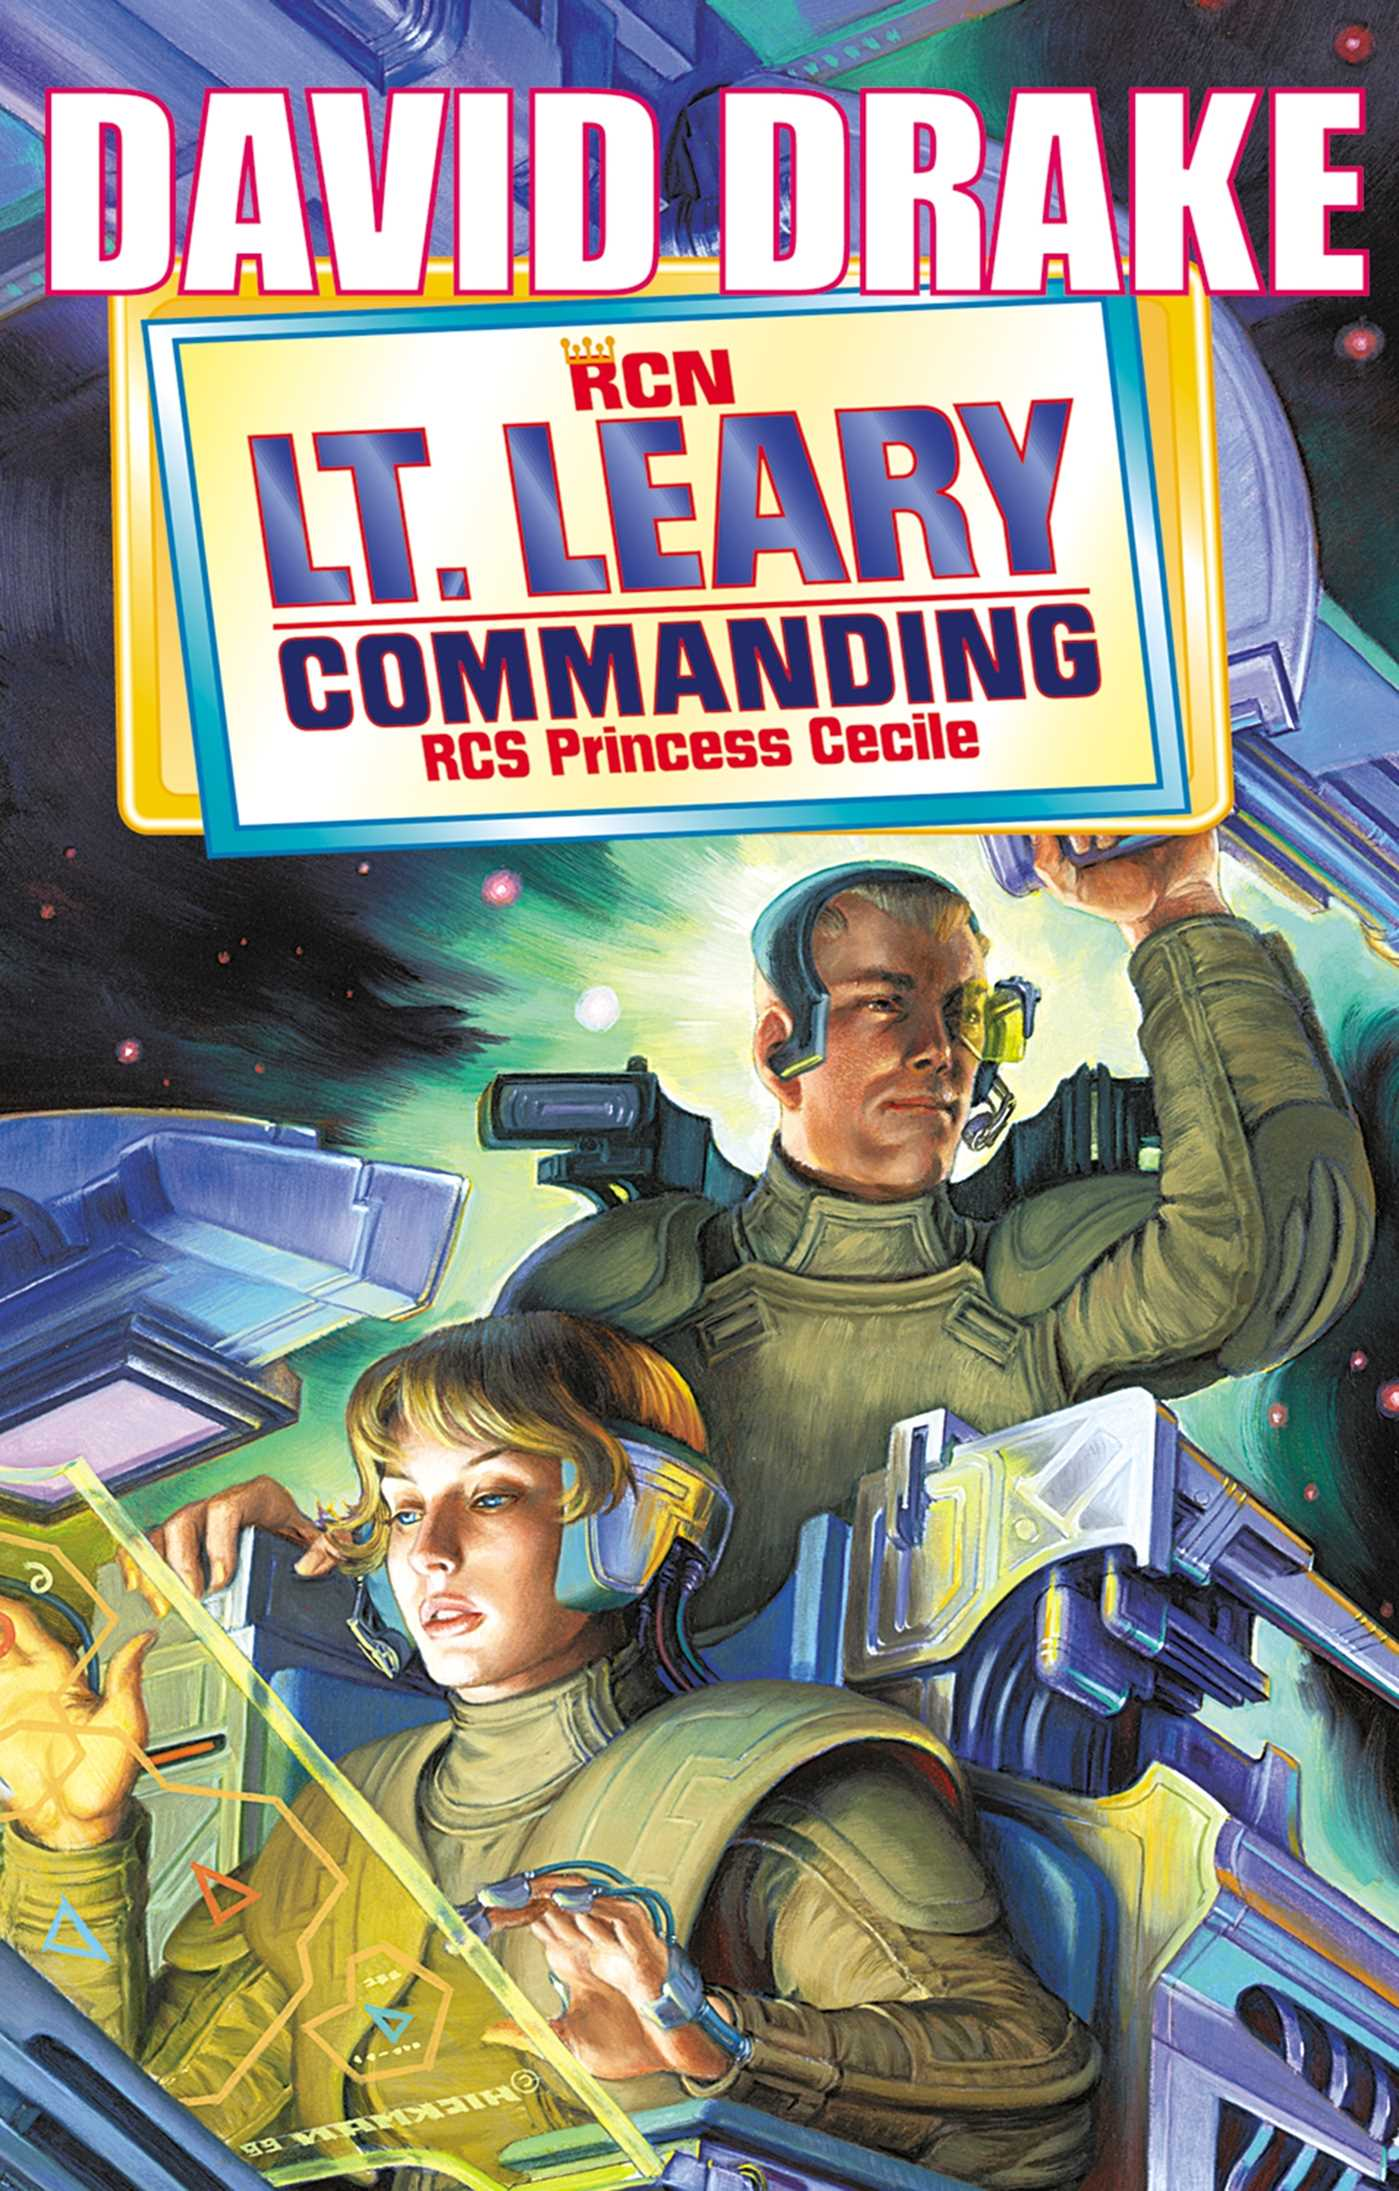 Lt leary commanding 9780671578756 hr